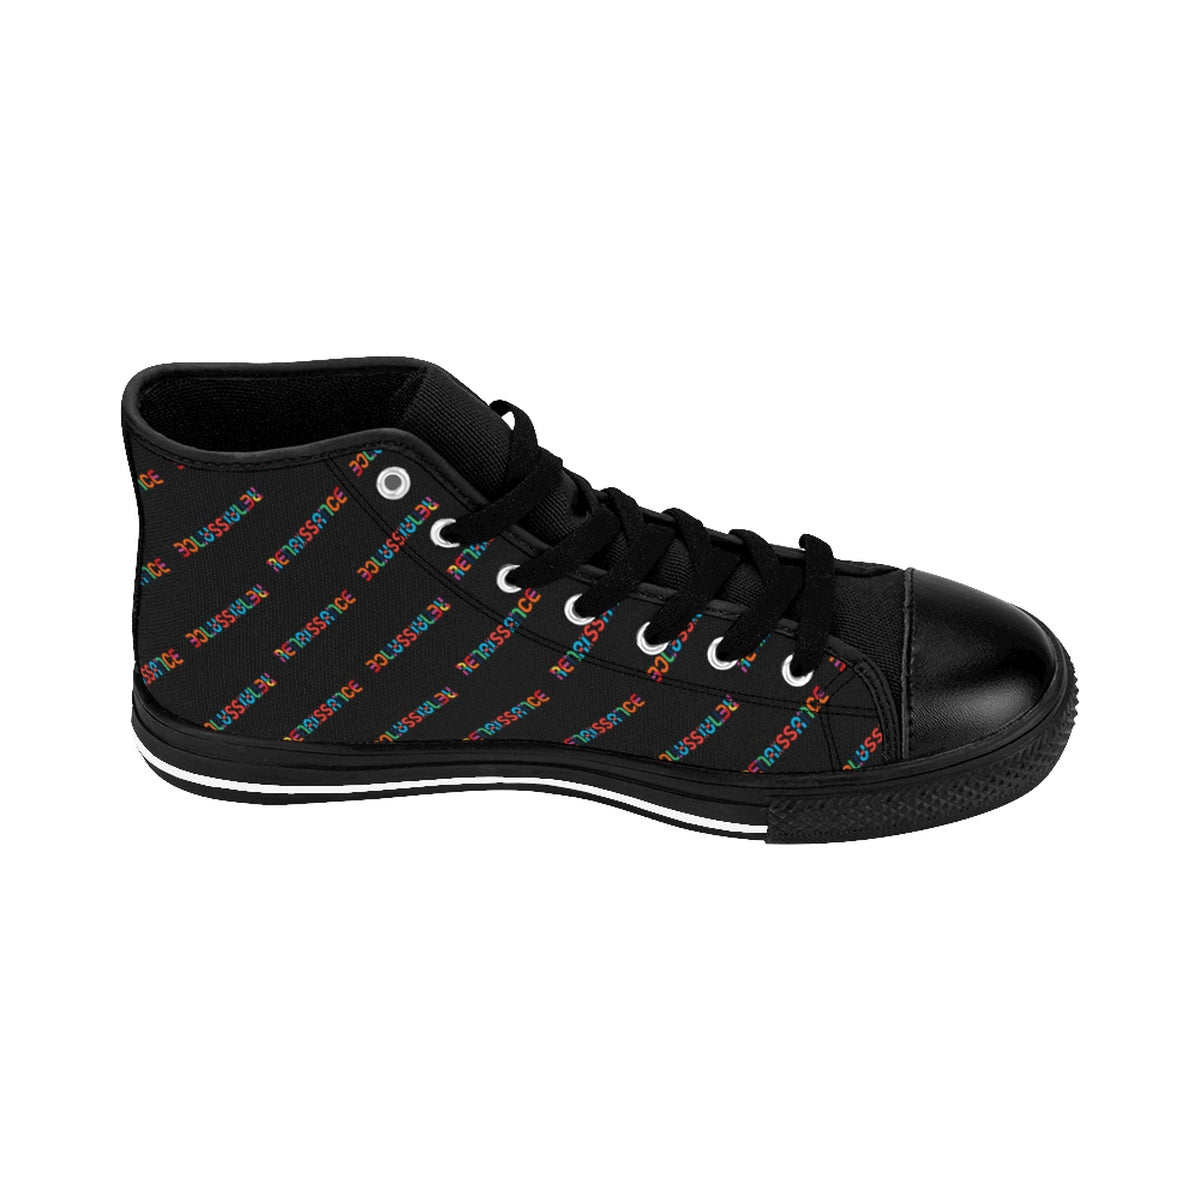 Renaissance Apparel Colored Pattern High-top Sneakers